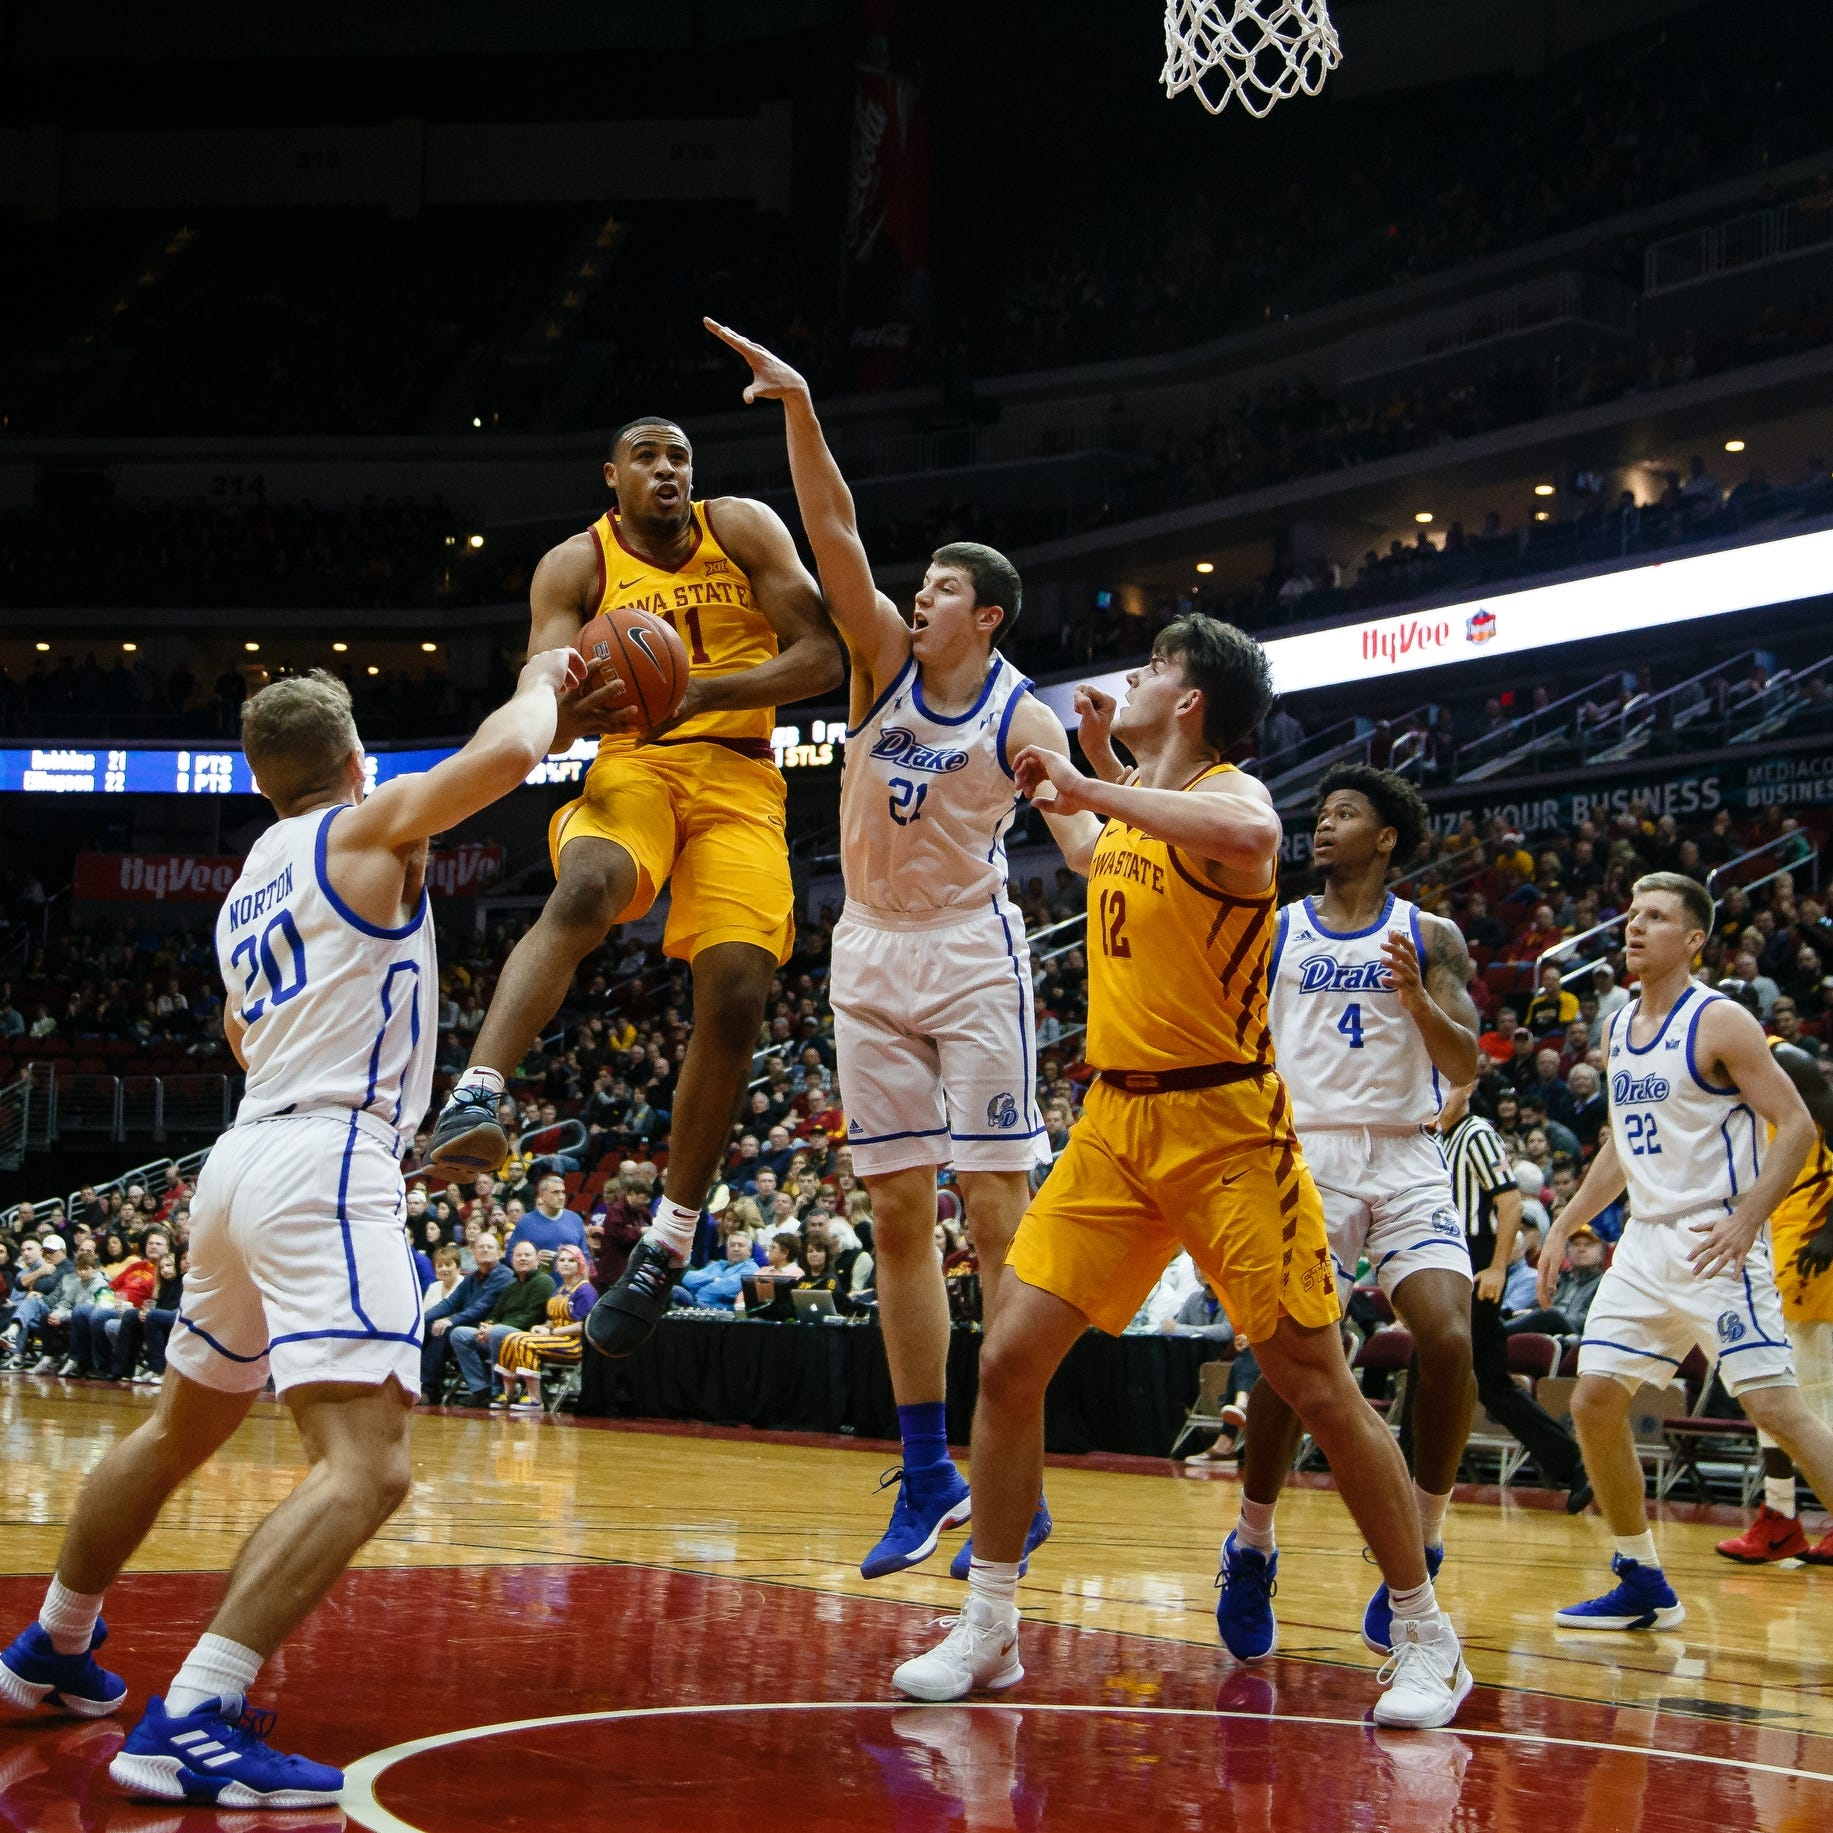 Iowa State's late outburst pushes Cyclones past Drake in Hy-Vee Classic